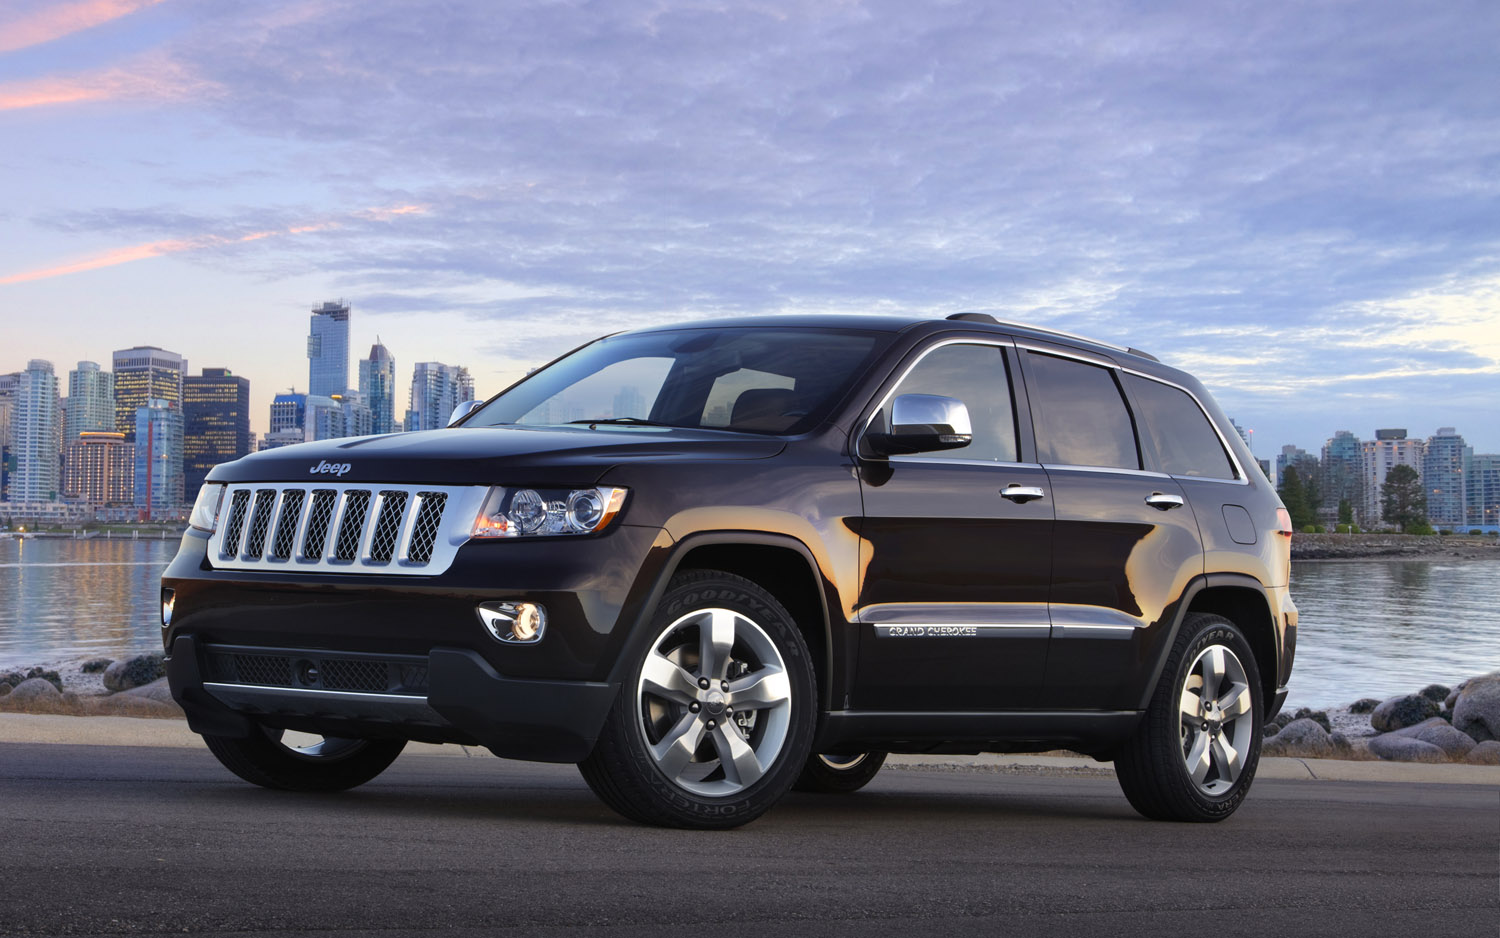 2013 Jeep Grand Cherokee Front Three Quarter1